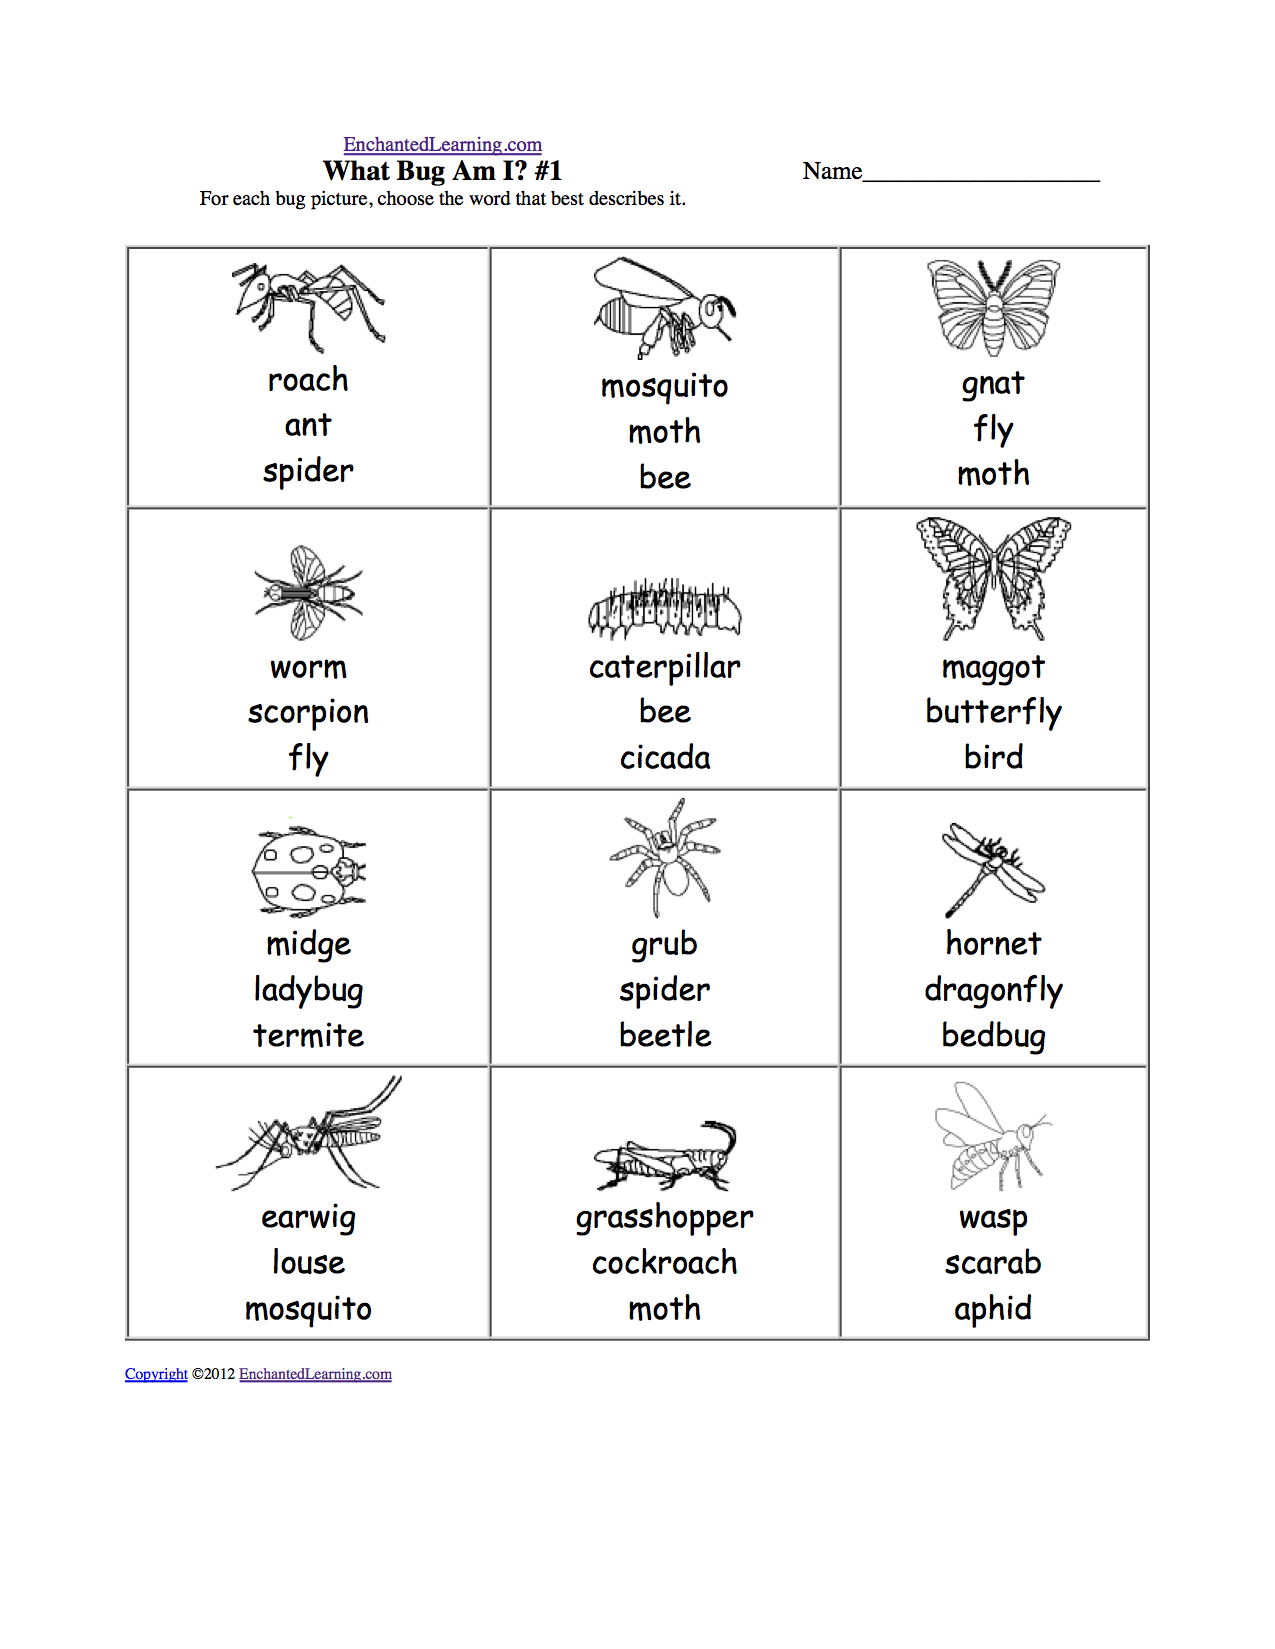 Aldiablosus  Pretty What Am I Worksheet Printouts  Enchantedlearningcom With Lovable Multiplication Tables  Printable Worksheets Besides College Algebra Review Worksheets Furthermore What Is An Adjective Worksheet With Beautiful Th Grade Free Math Worksheets Also Autistic Worksheets In Addition Days Of The Week And Months Of The Year Worksheets And Manuscript Handwriting Practice Worksheets As Well As Numbers Worksheets  Additionally Function Machine Worksheets From Enchantedlearningcom With Aldiablosus  Lovable What Am I Worksheet Printouts  Enchantedlearningcom With Beautiful Multiplication Tables  Printable Worksheets Besides College Algebra Review Worksheets Furthermore What Is An Adjective Worksheet And Pretty Th Grade Free Math Worksheets Also Autistic Worksheets In Addition Days Of The Week And Months Of The Year Worksheets From Enchantedlearningcom